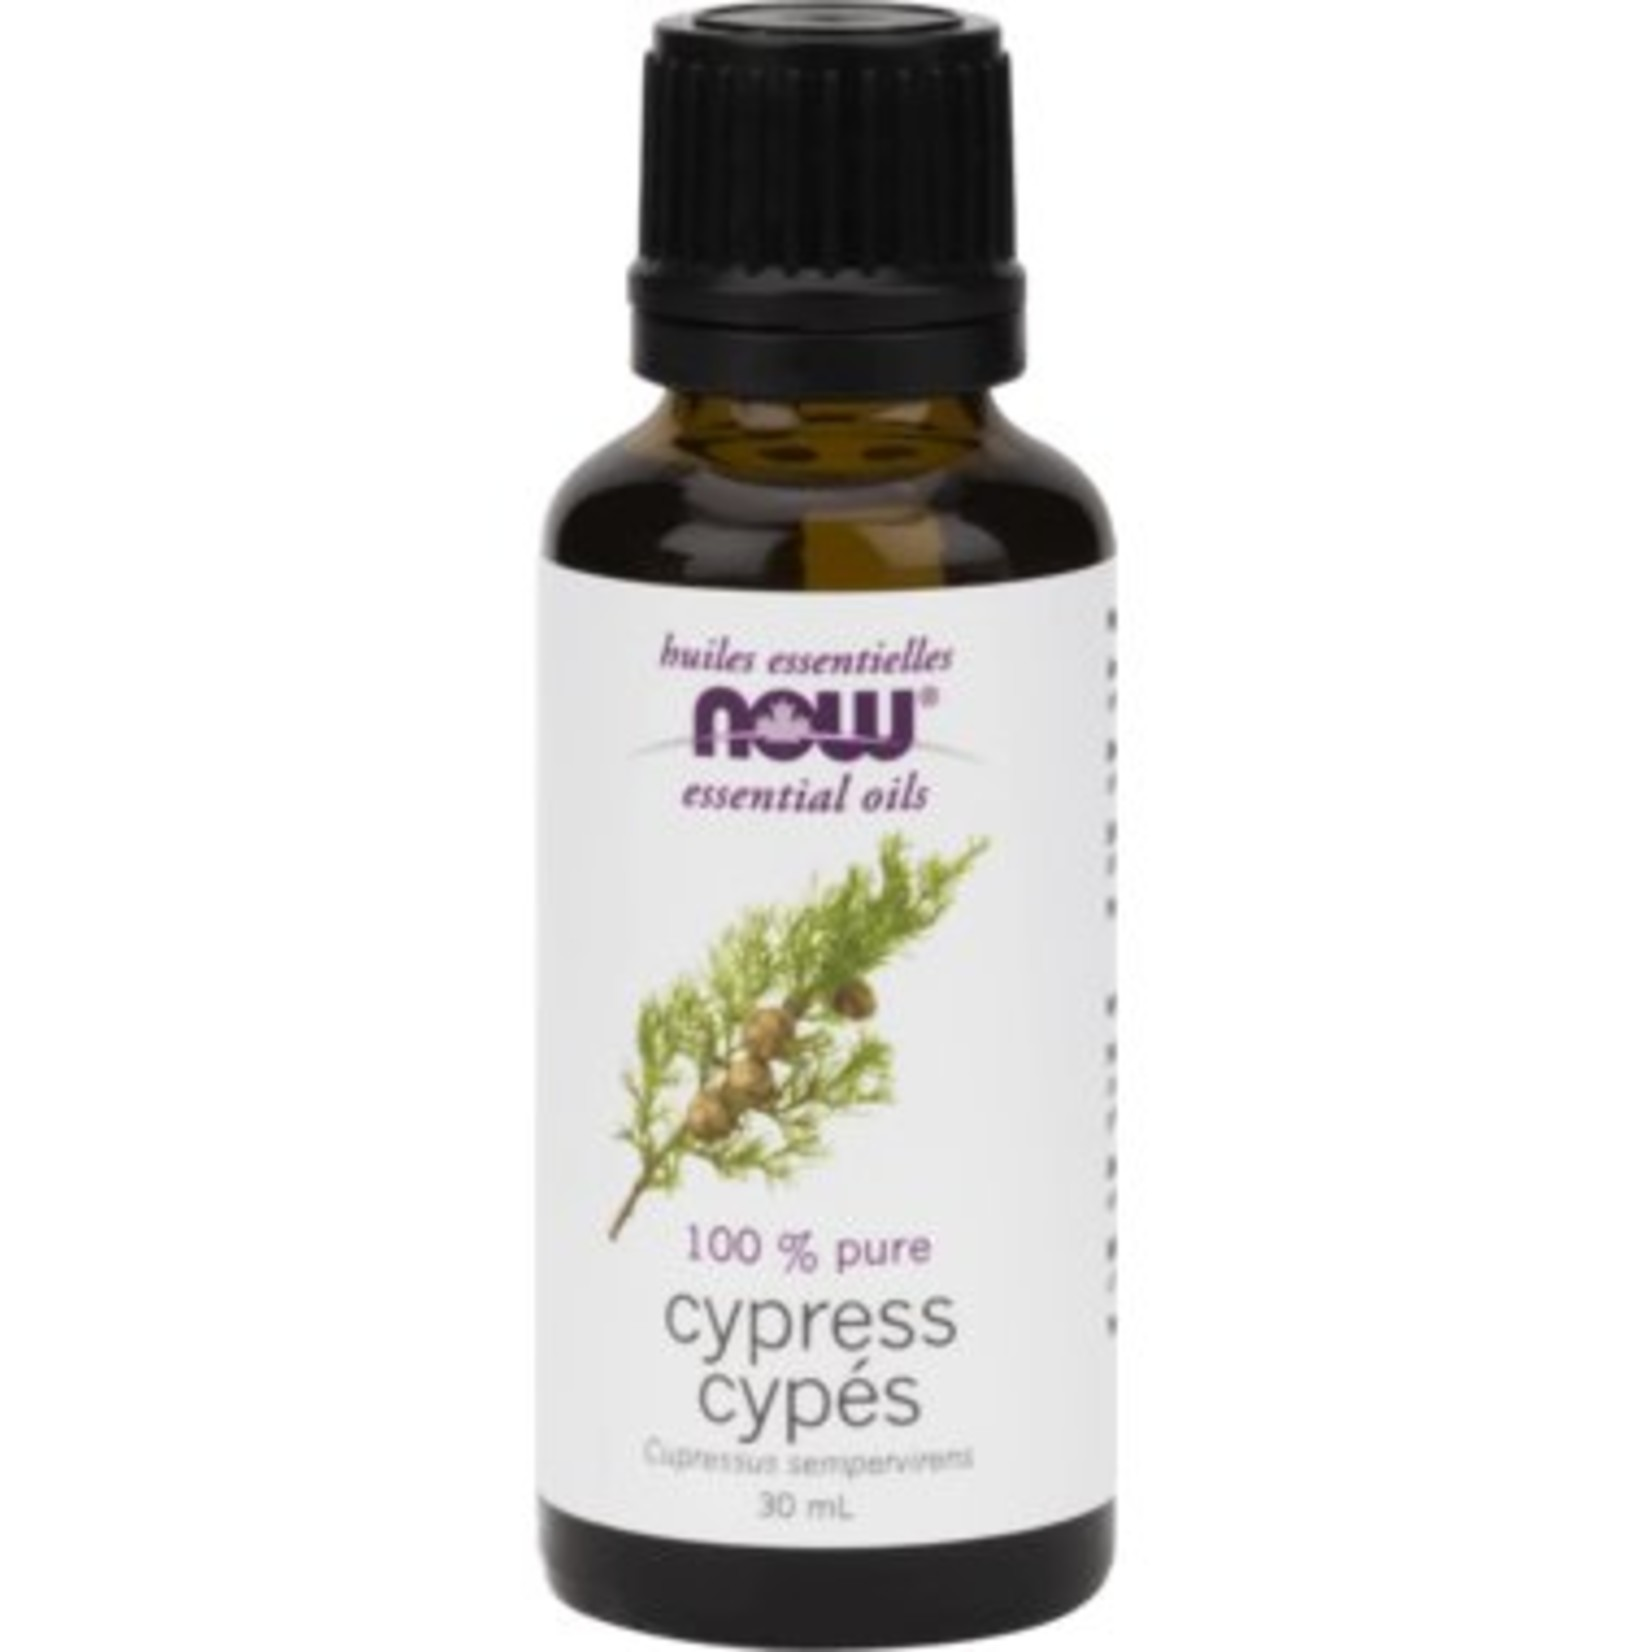 NOW NOW Cypress Essential Oil 30ml